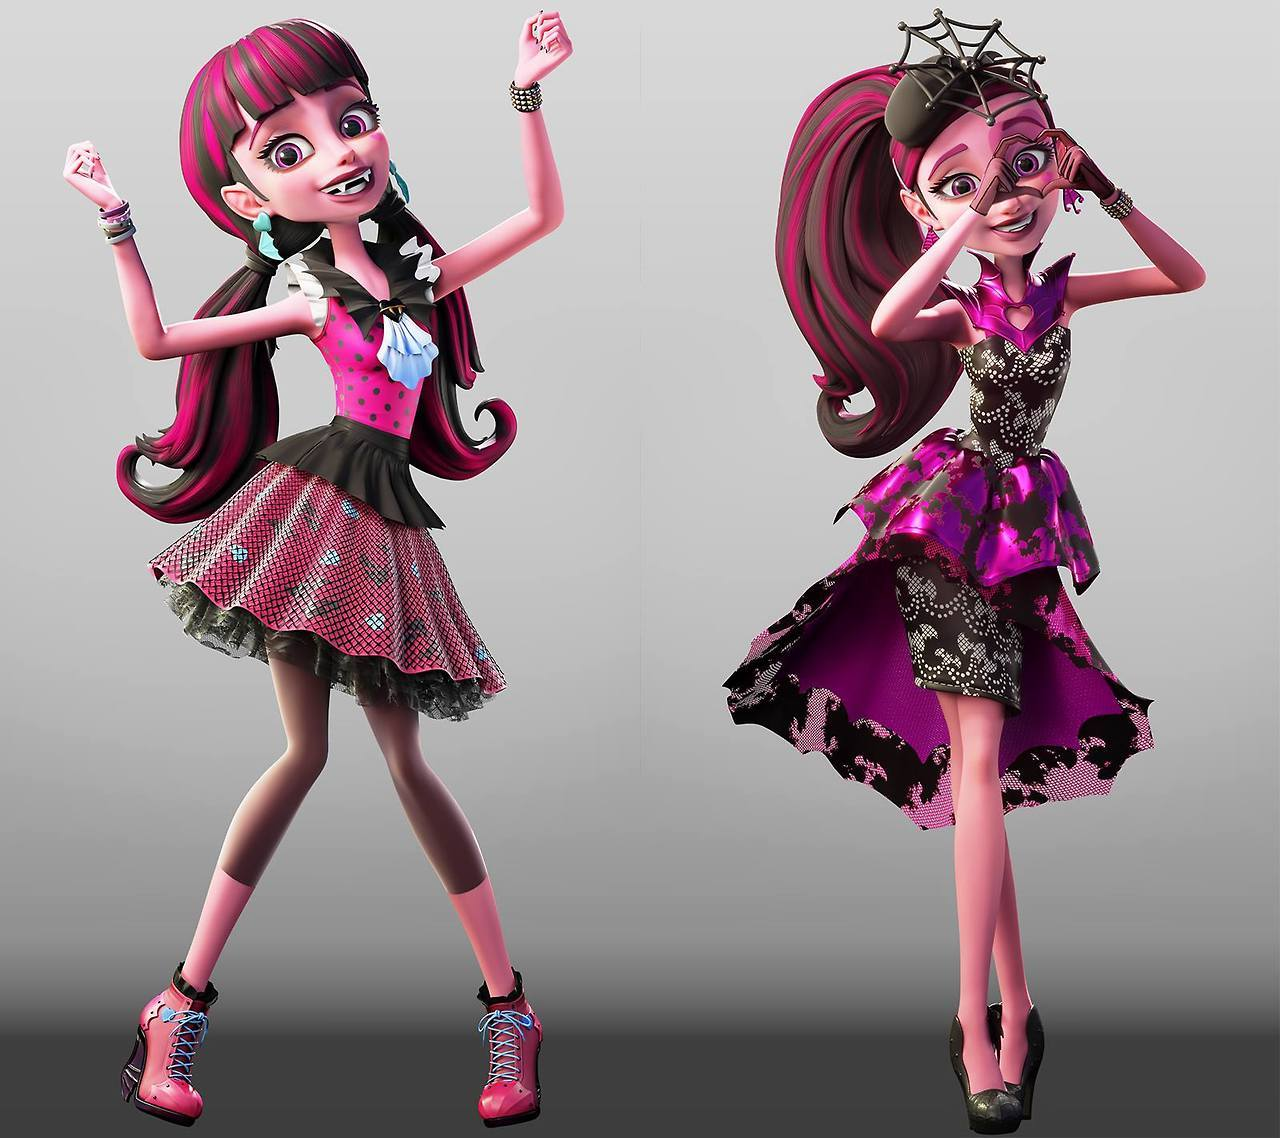 Monster High Images Draculaura Hd Wallpaper And Background